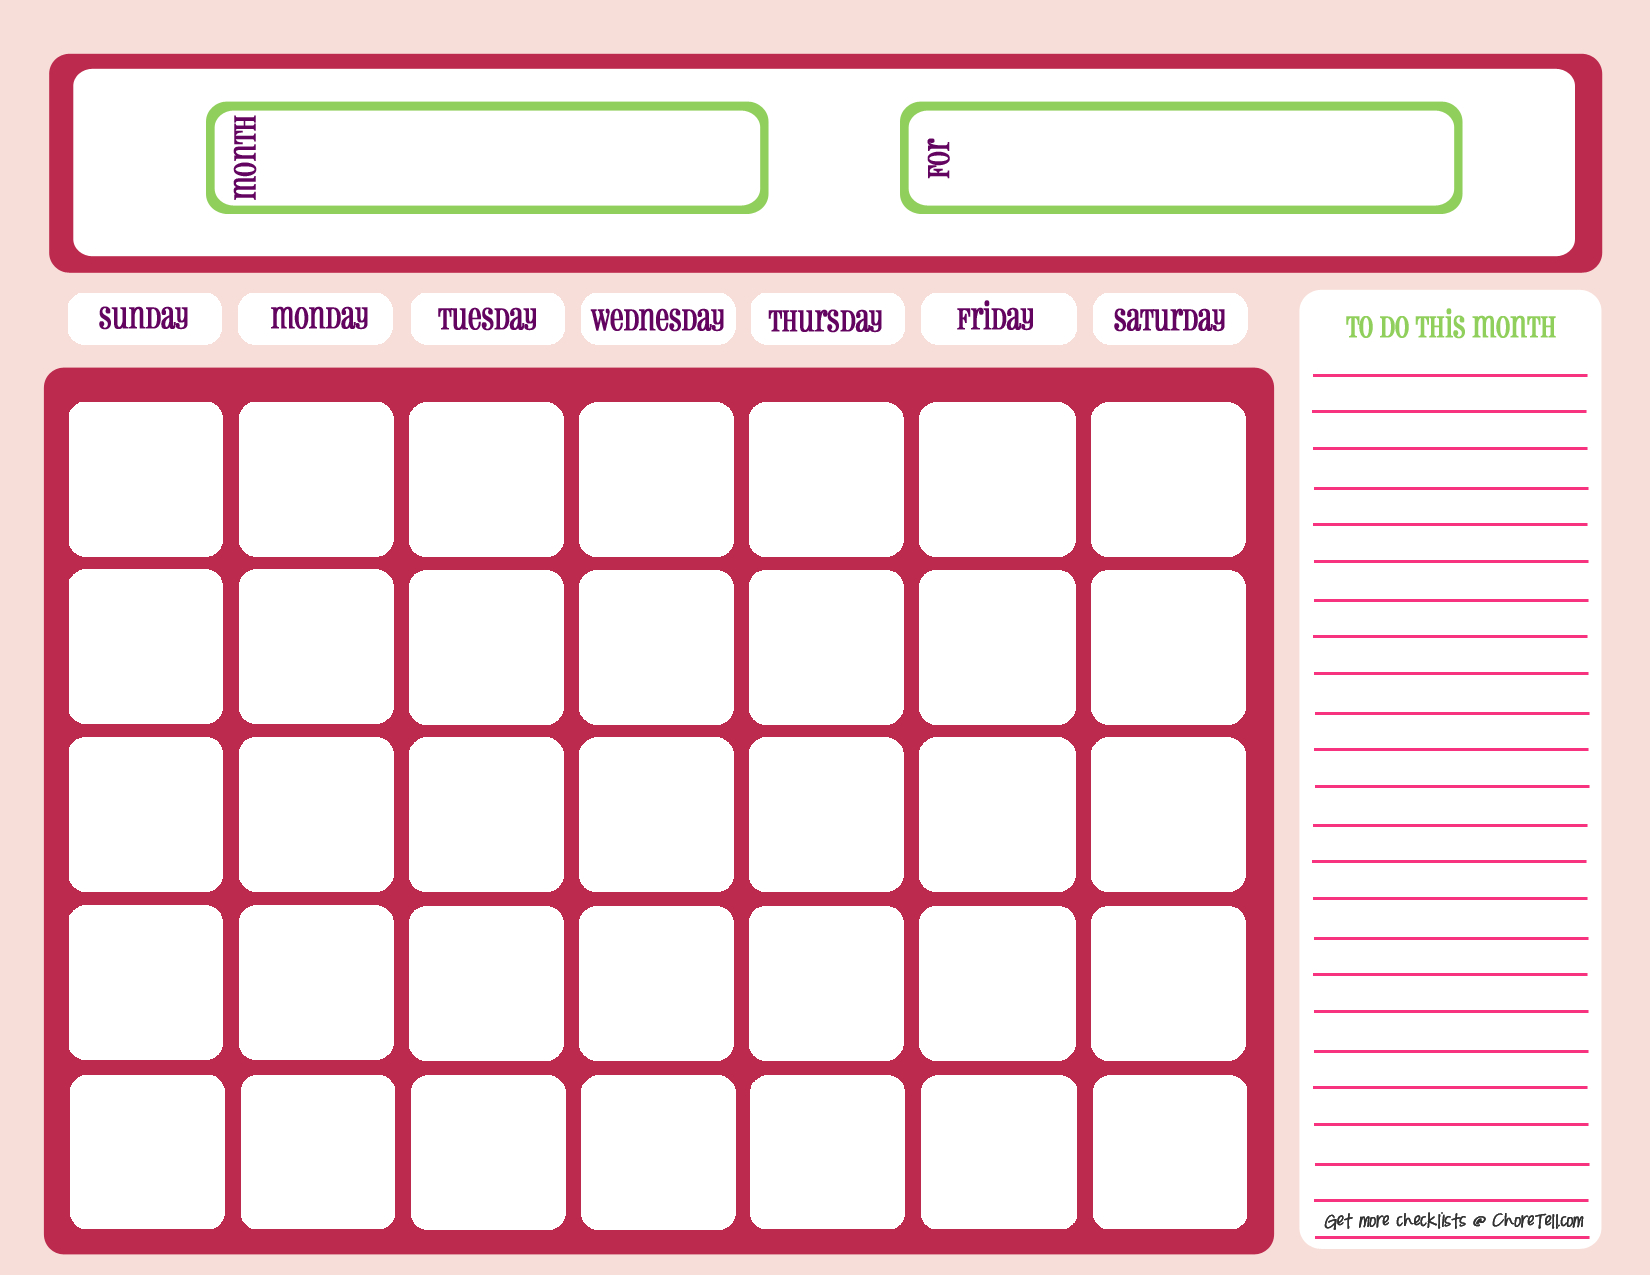 Blank Month Calendar - Pinks - Free Printable Downloads From Choretell regarding Blank One Month Calendar Template